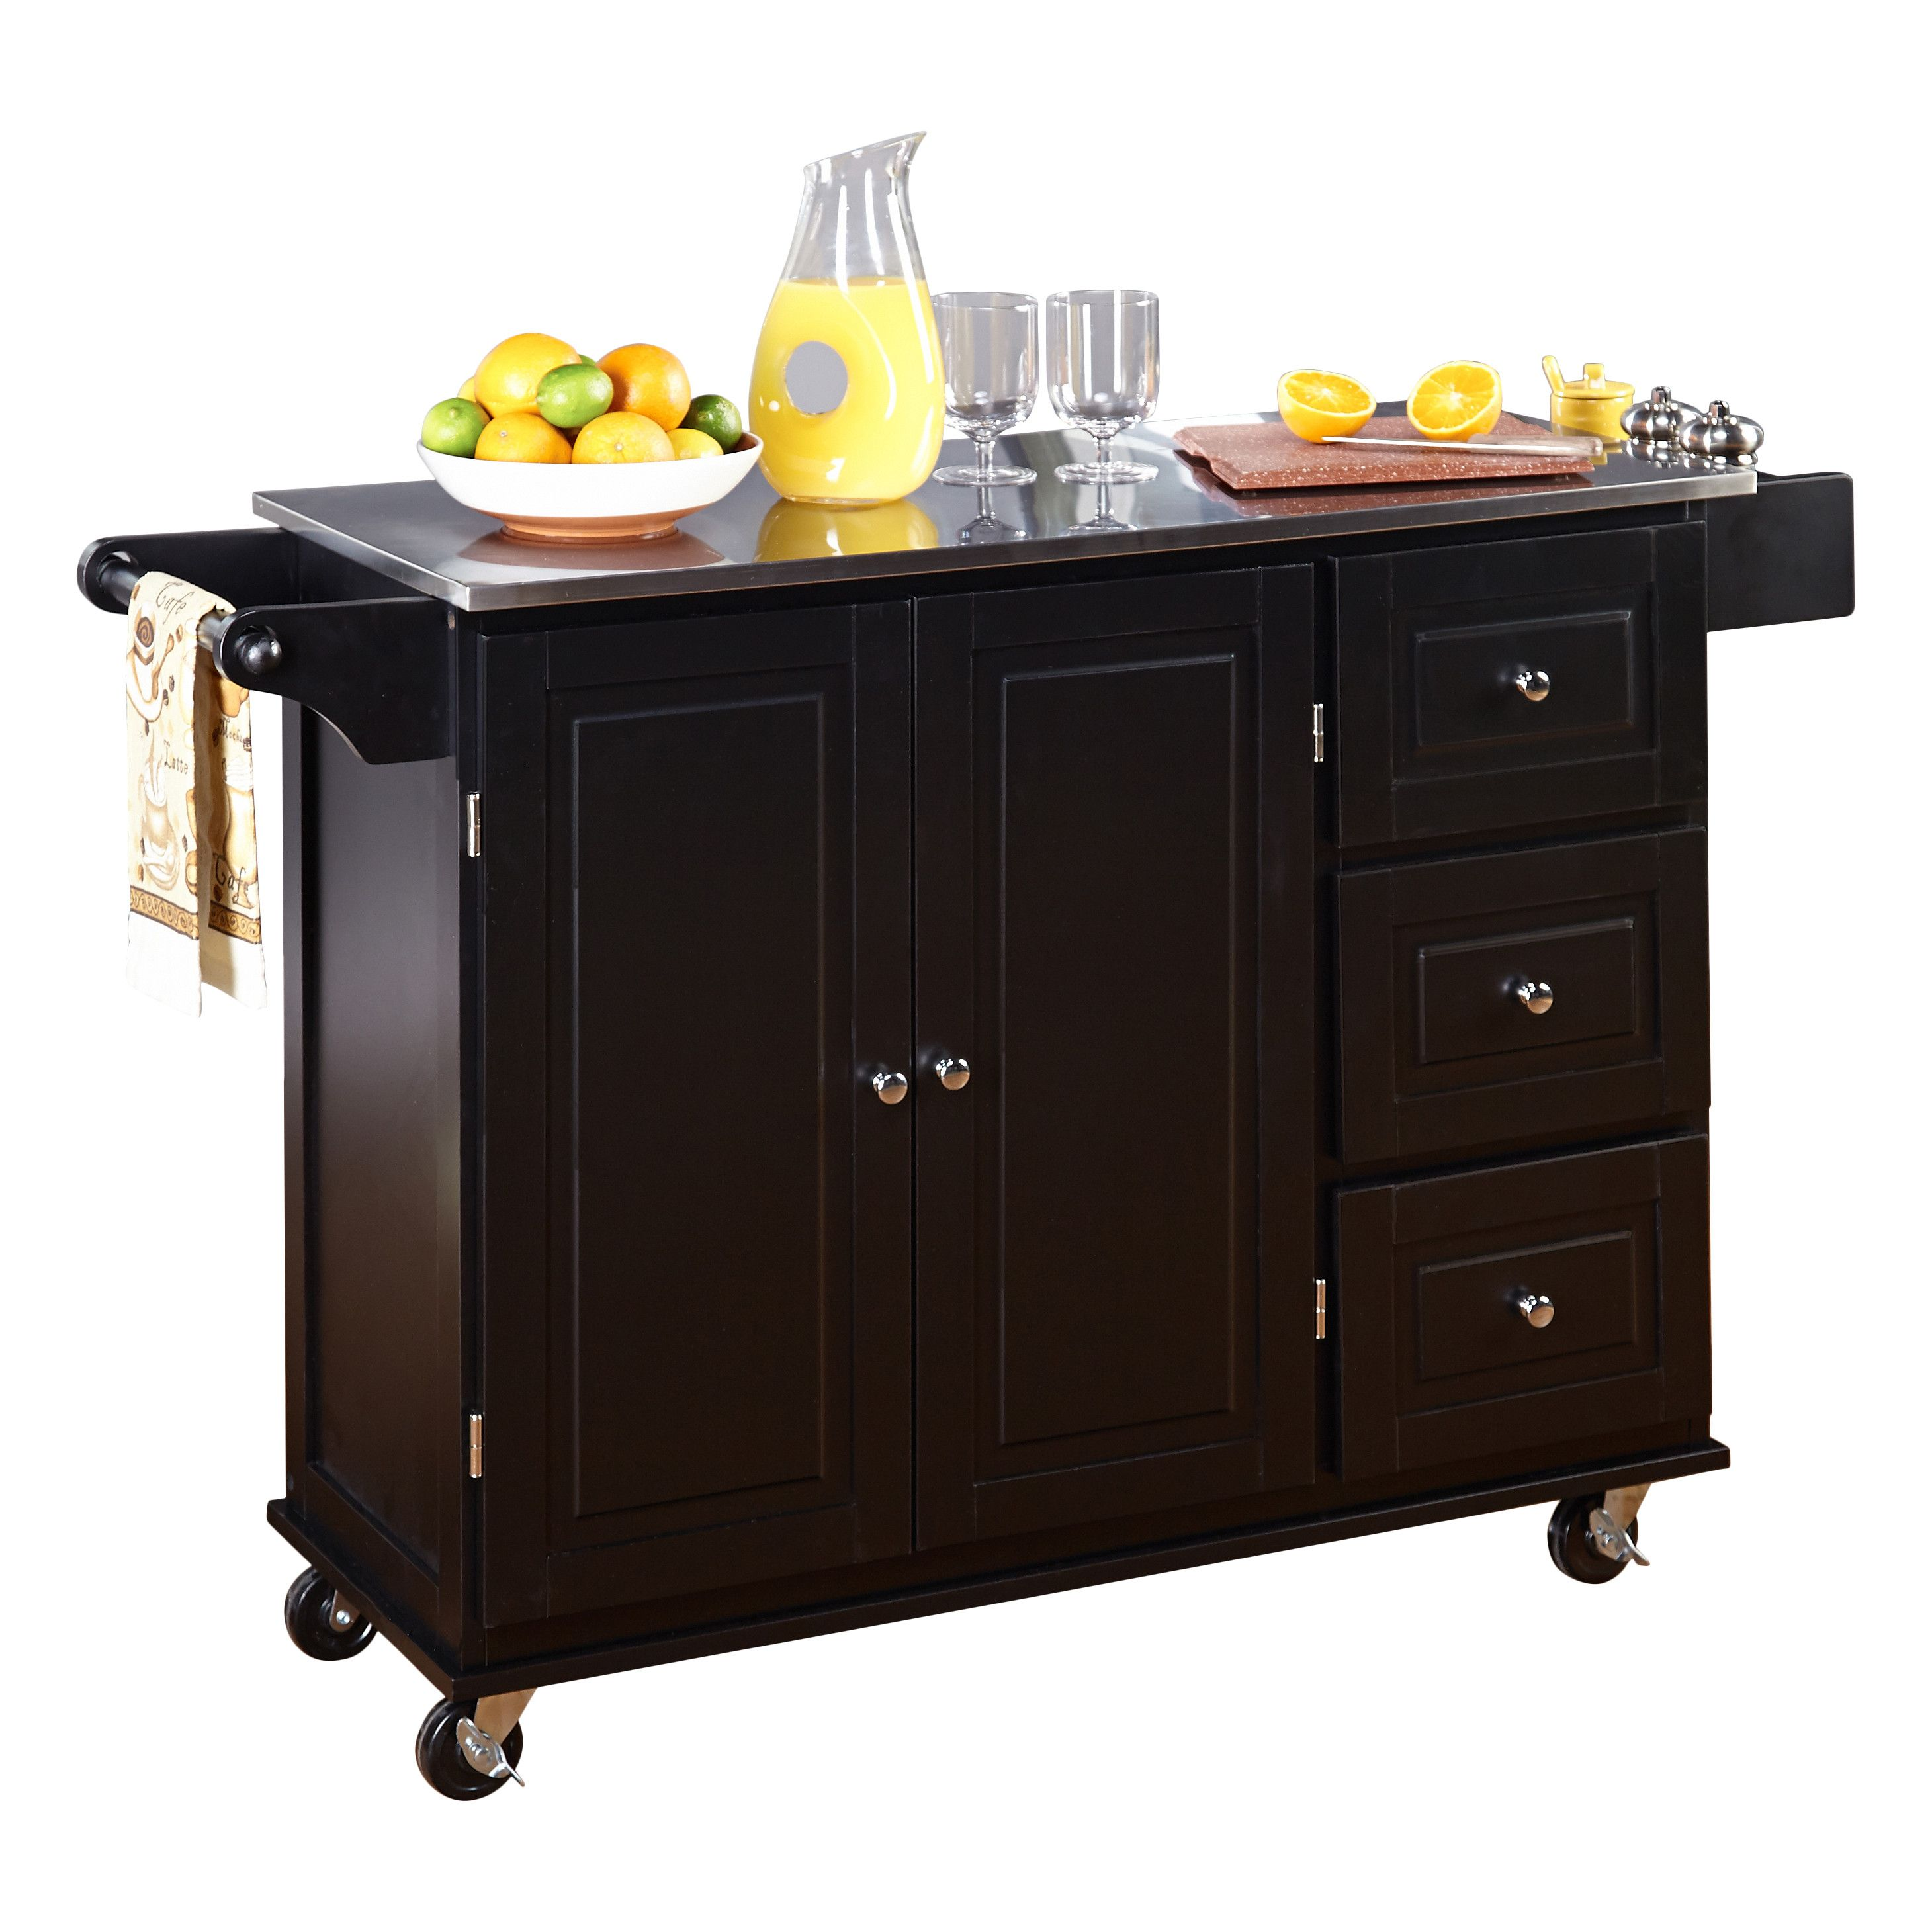 TMS Wallace Kitchen Island with Stainless Steel Top